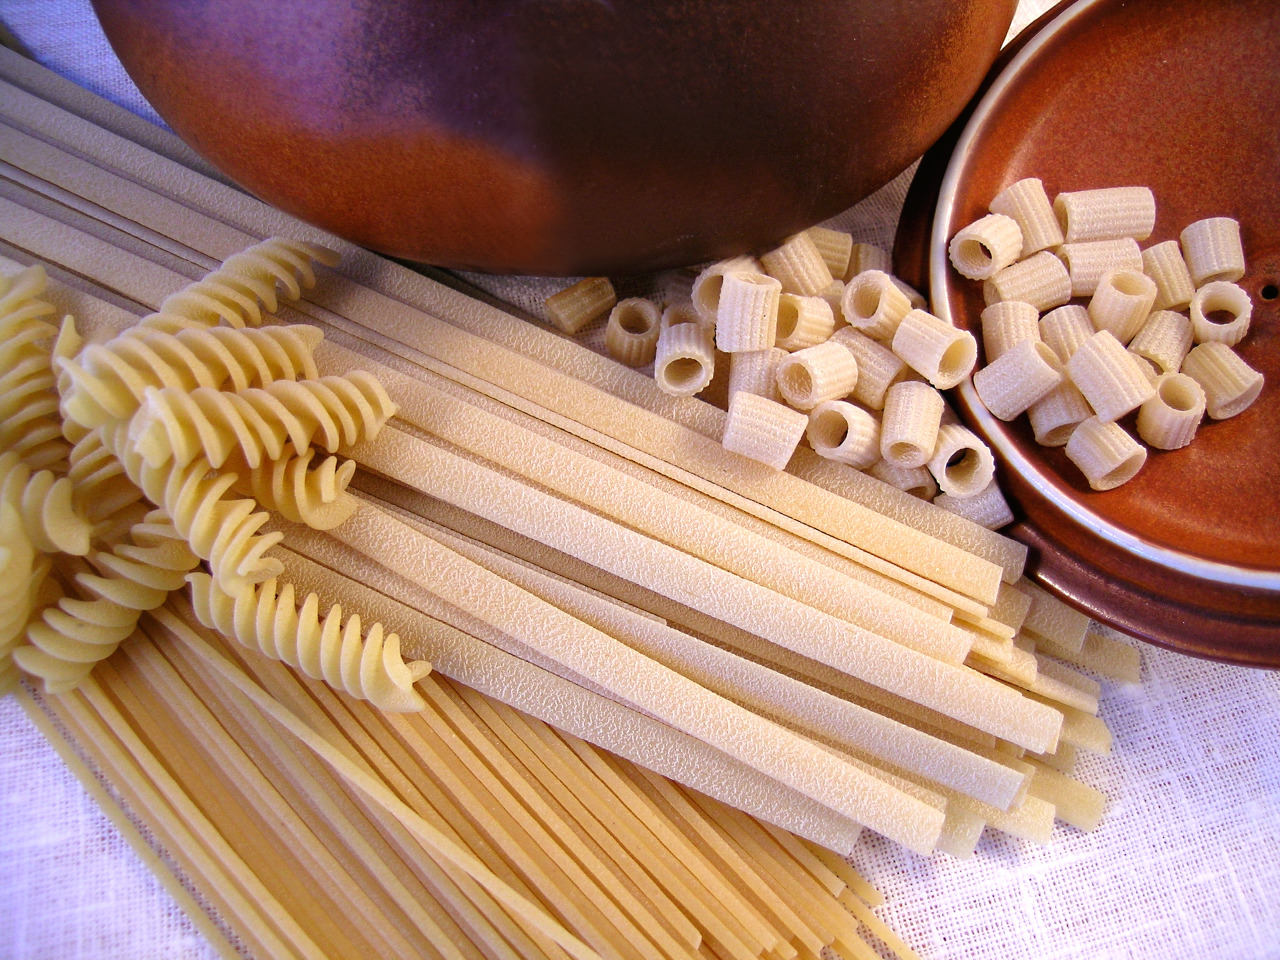 Kamut pasta in different shapes